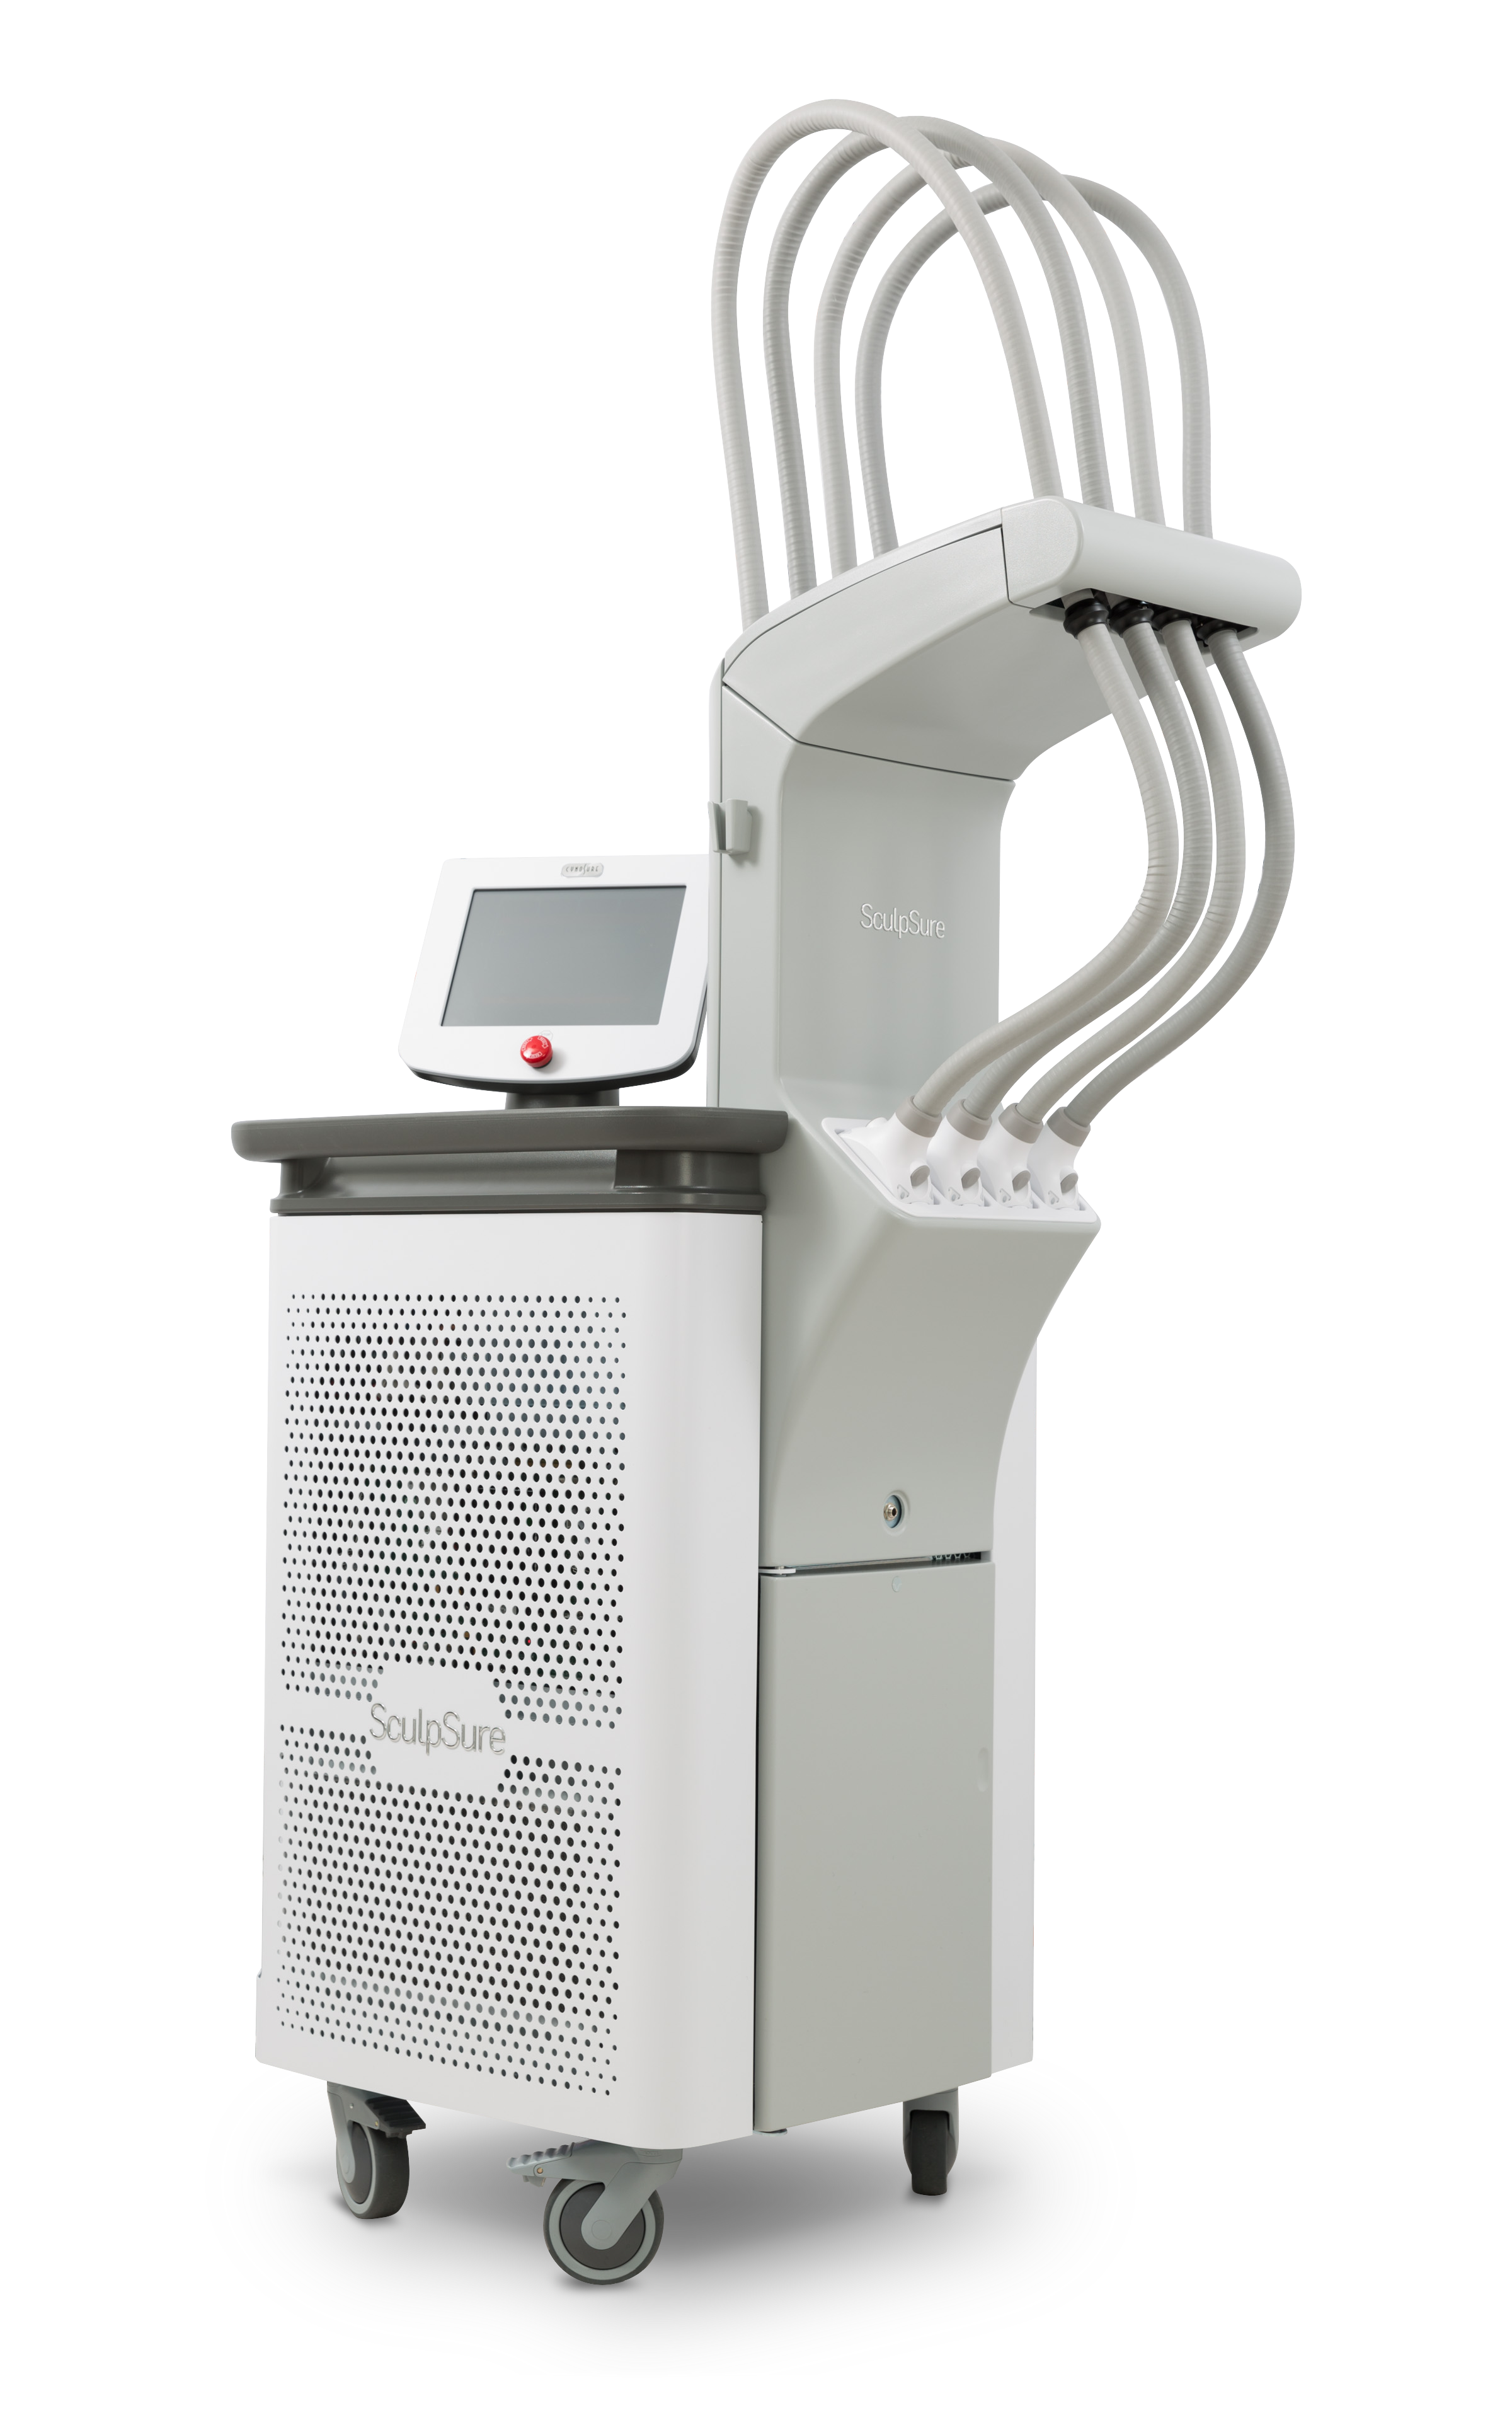 png-sculpsuremachine.png